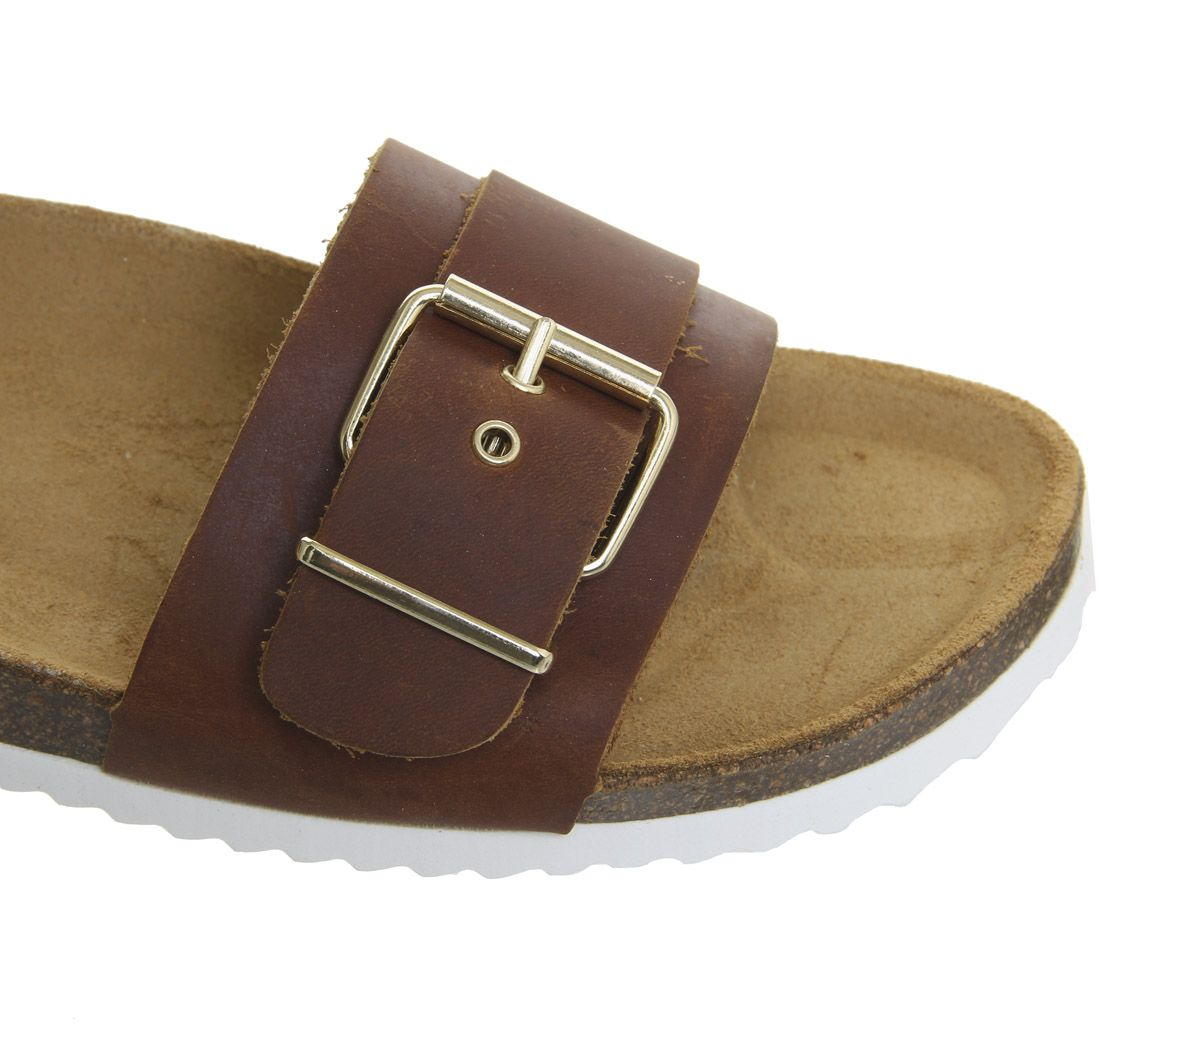 Womens-Office-Stereo-Buckle-Footbed-Sandals-Tan-Leather-Sandals thumbnail 7